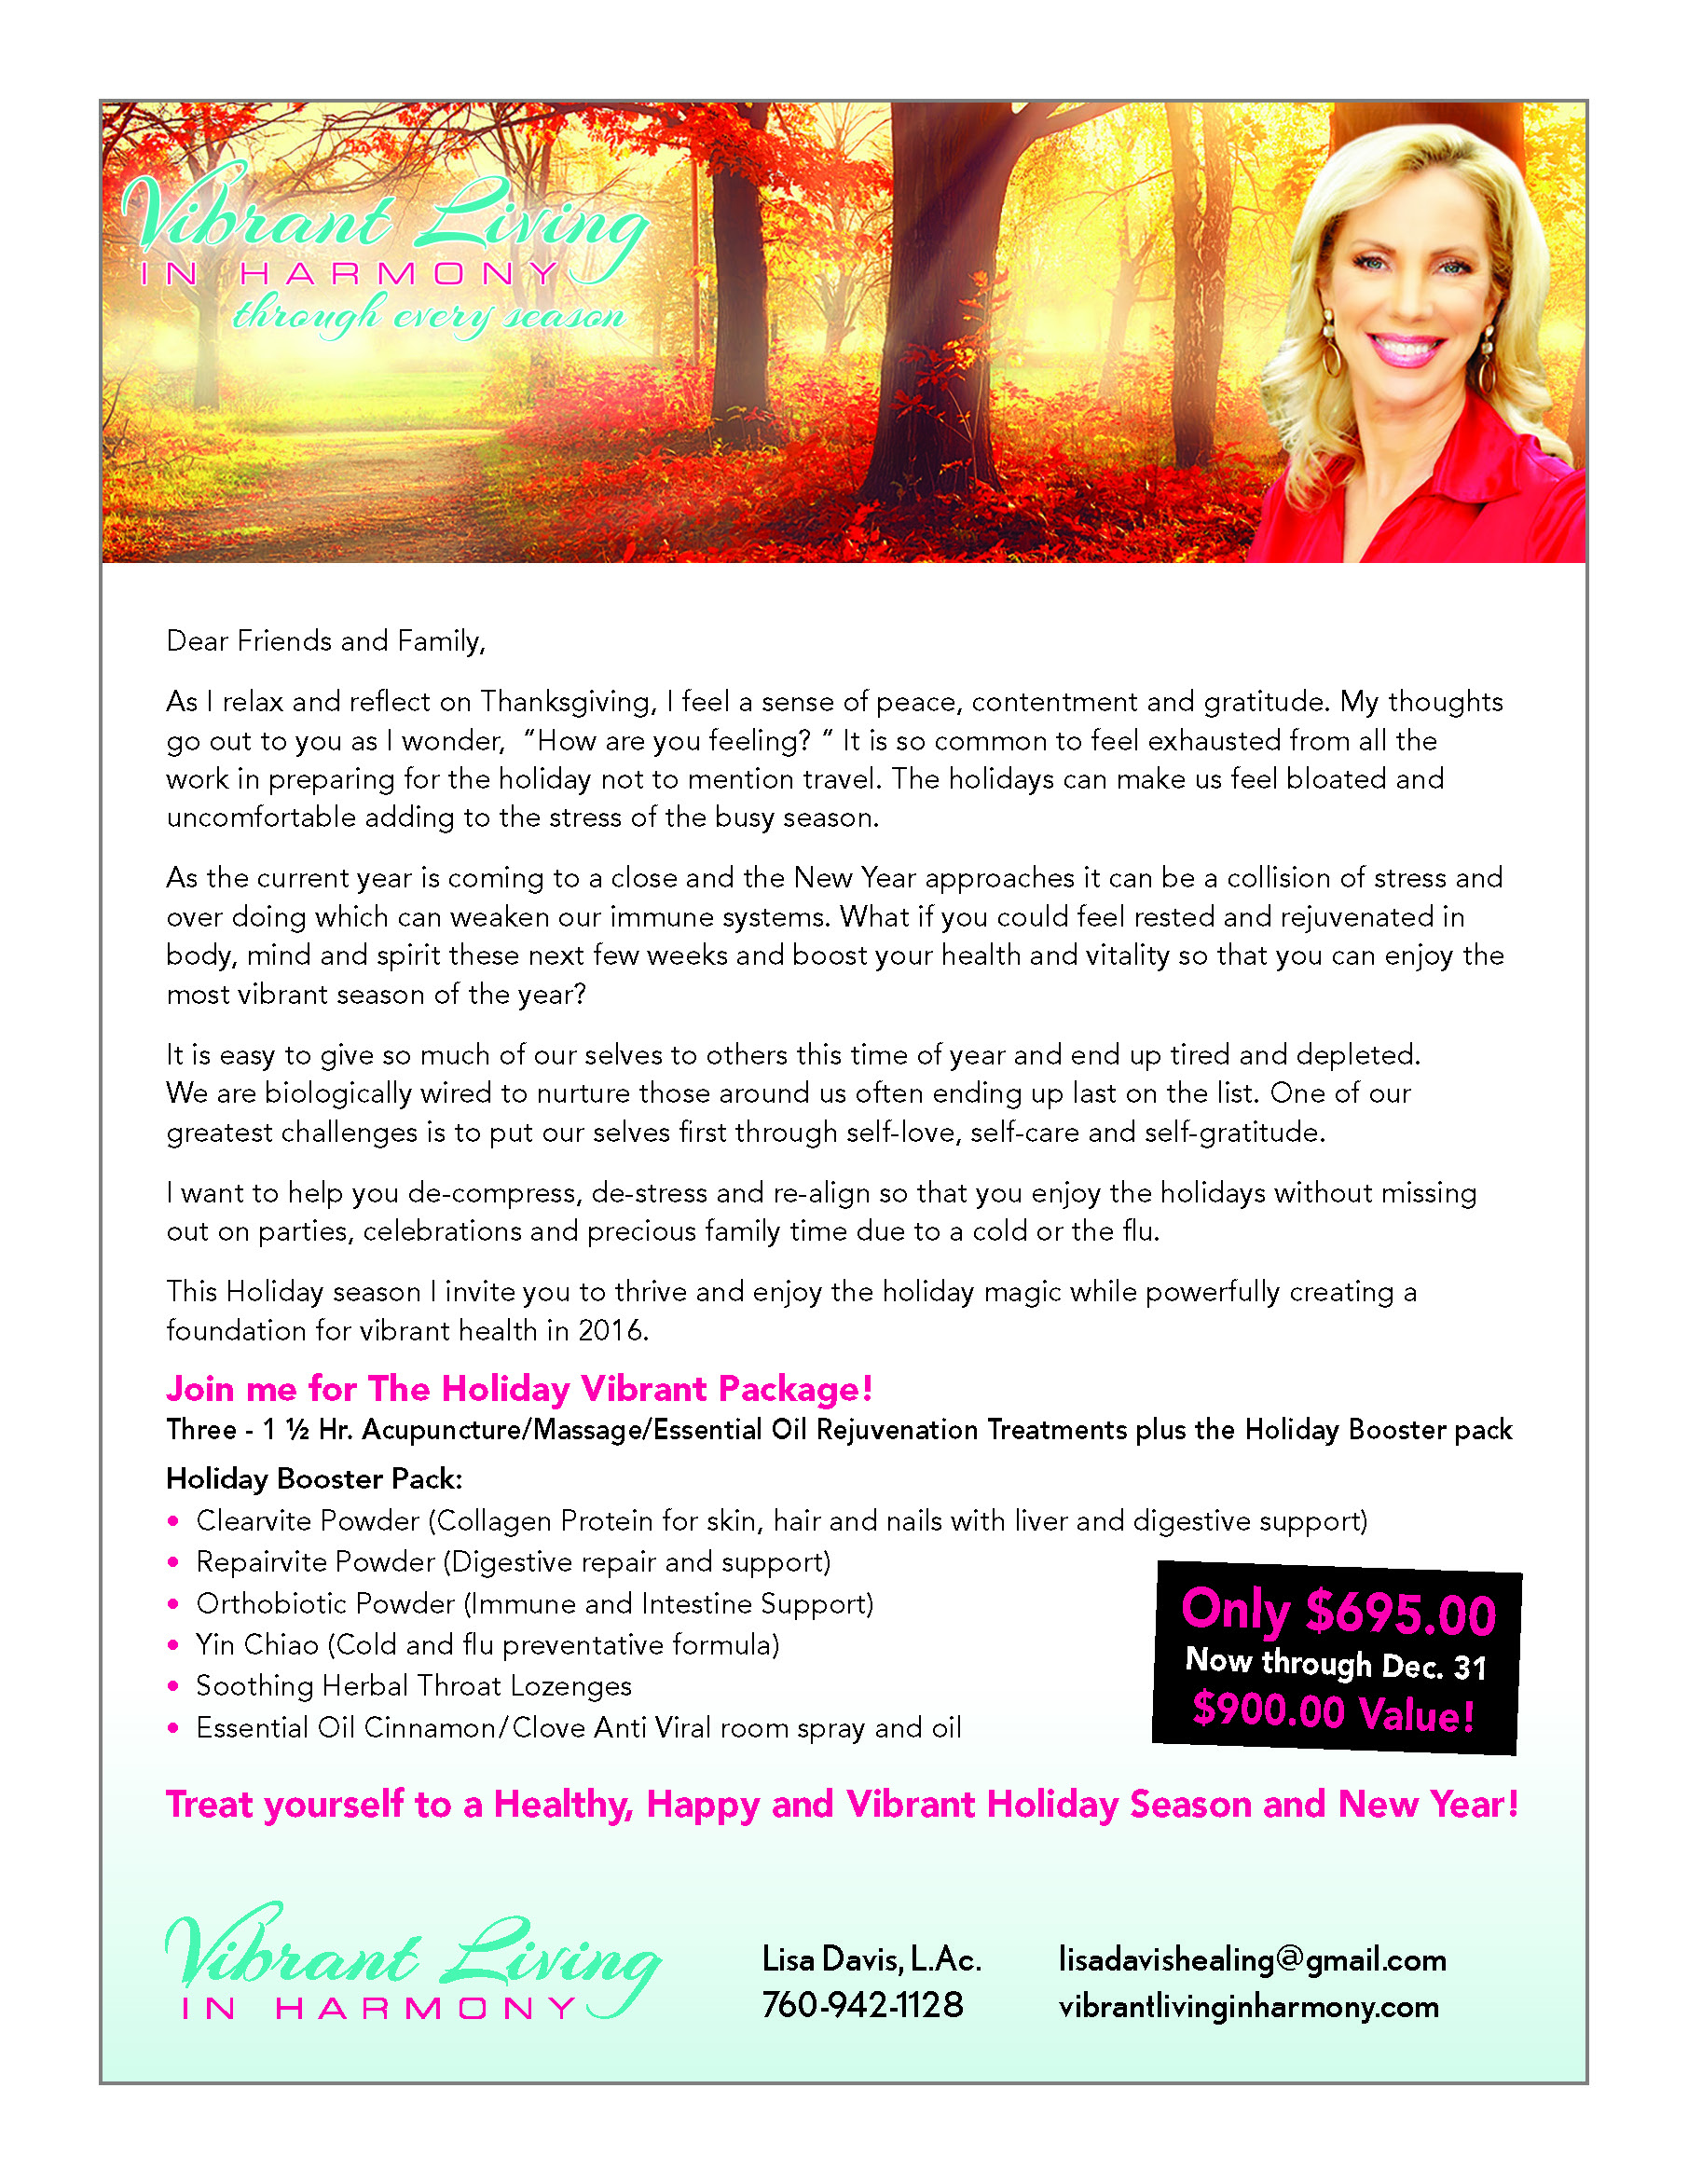 Vibrant Living Holiday Package Flyer